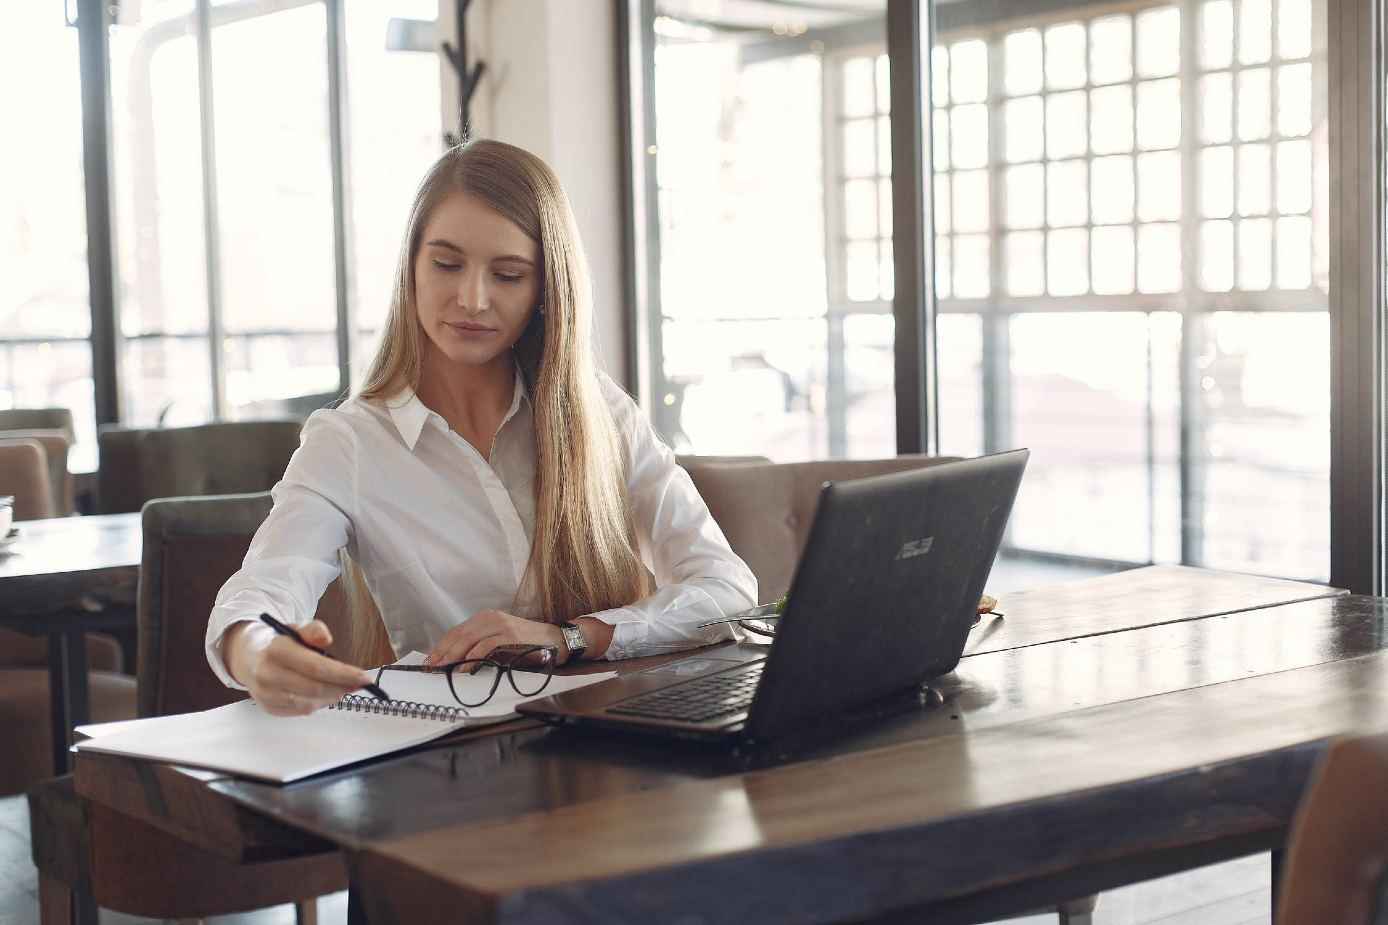 Young focused businesswoman working remotely with copybook in cafe during daytime